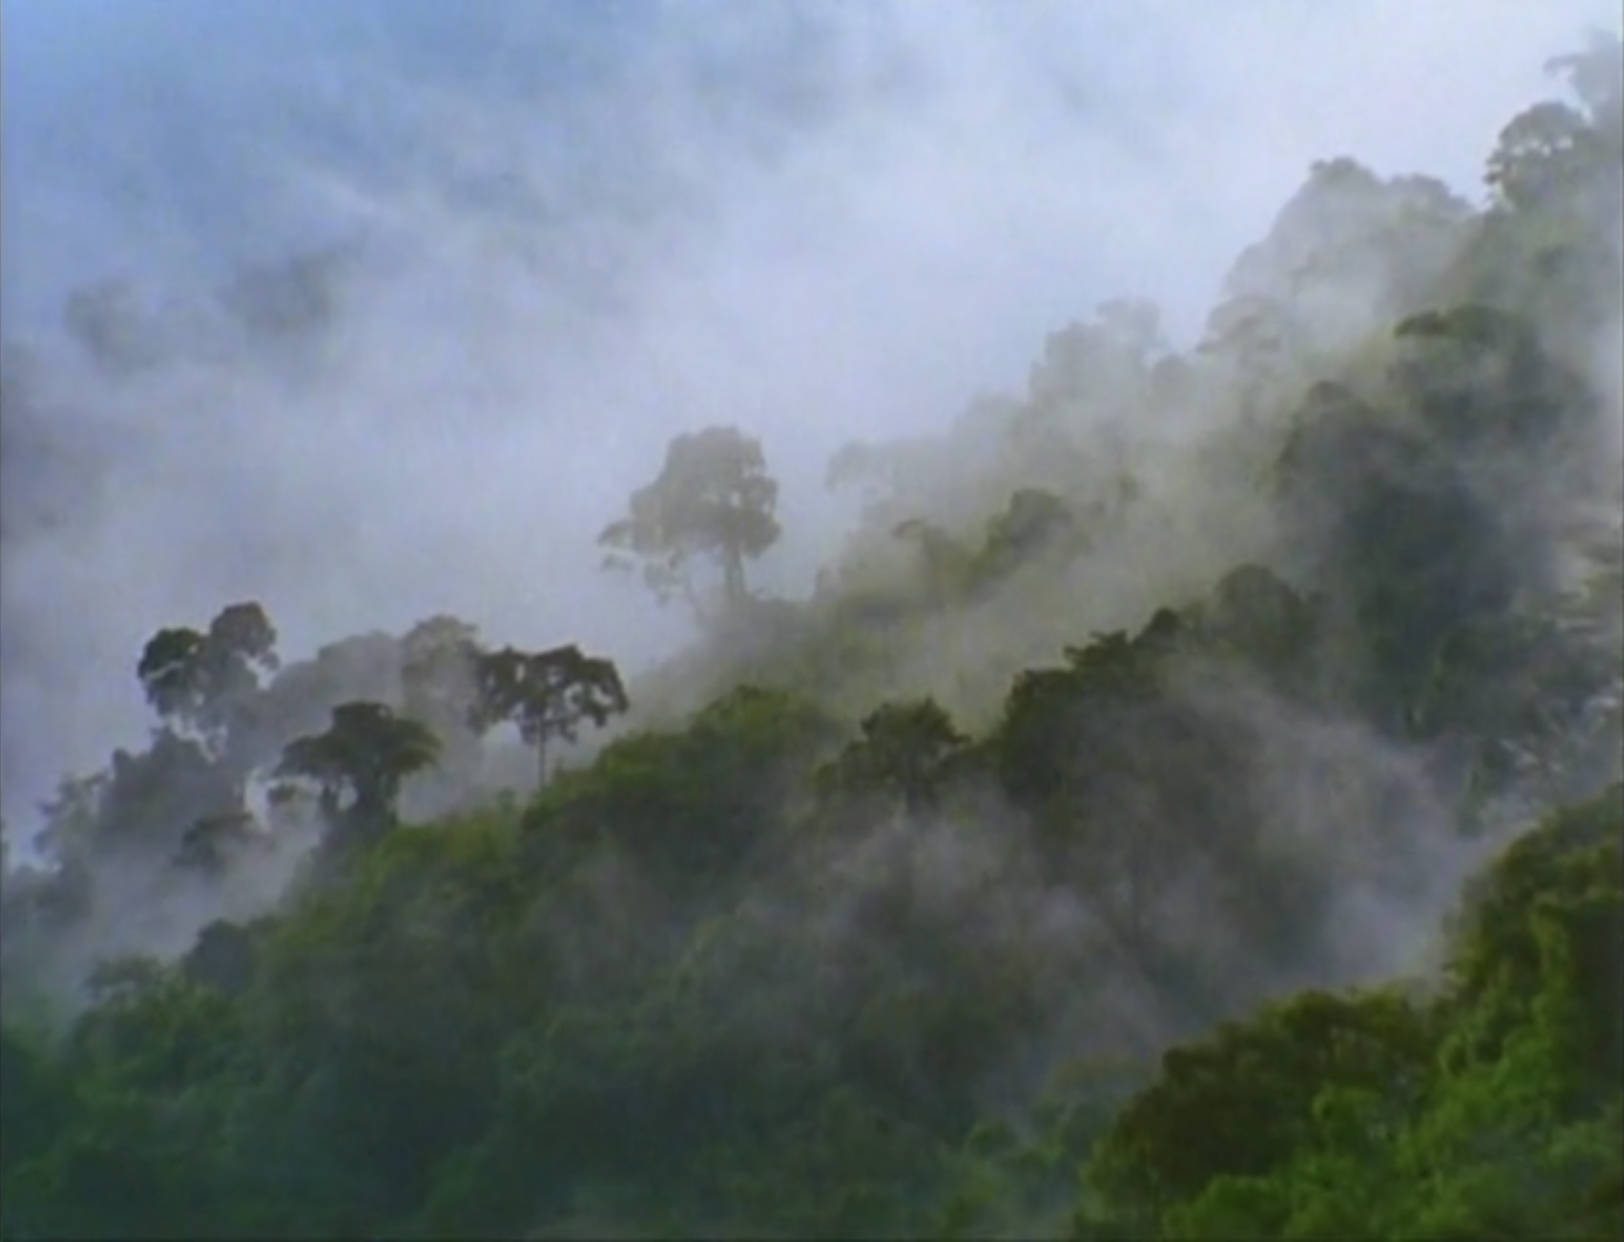 Sound Ideas, JUNGLE, SOUTH AMERICA - SOUTH AMERICA: MORNING AMBIENCE, BIRDS, INSECTS